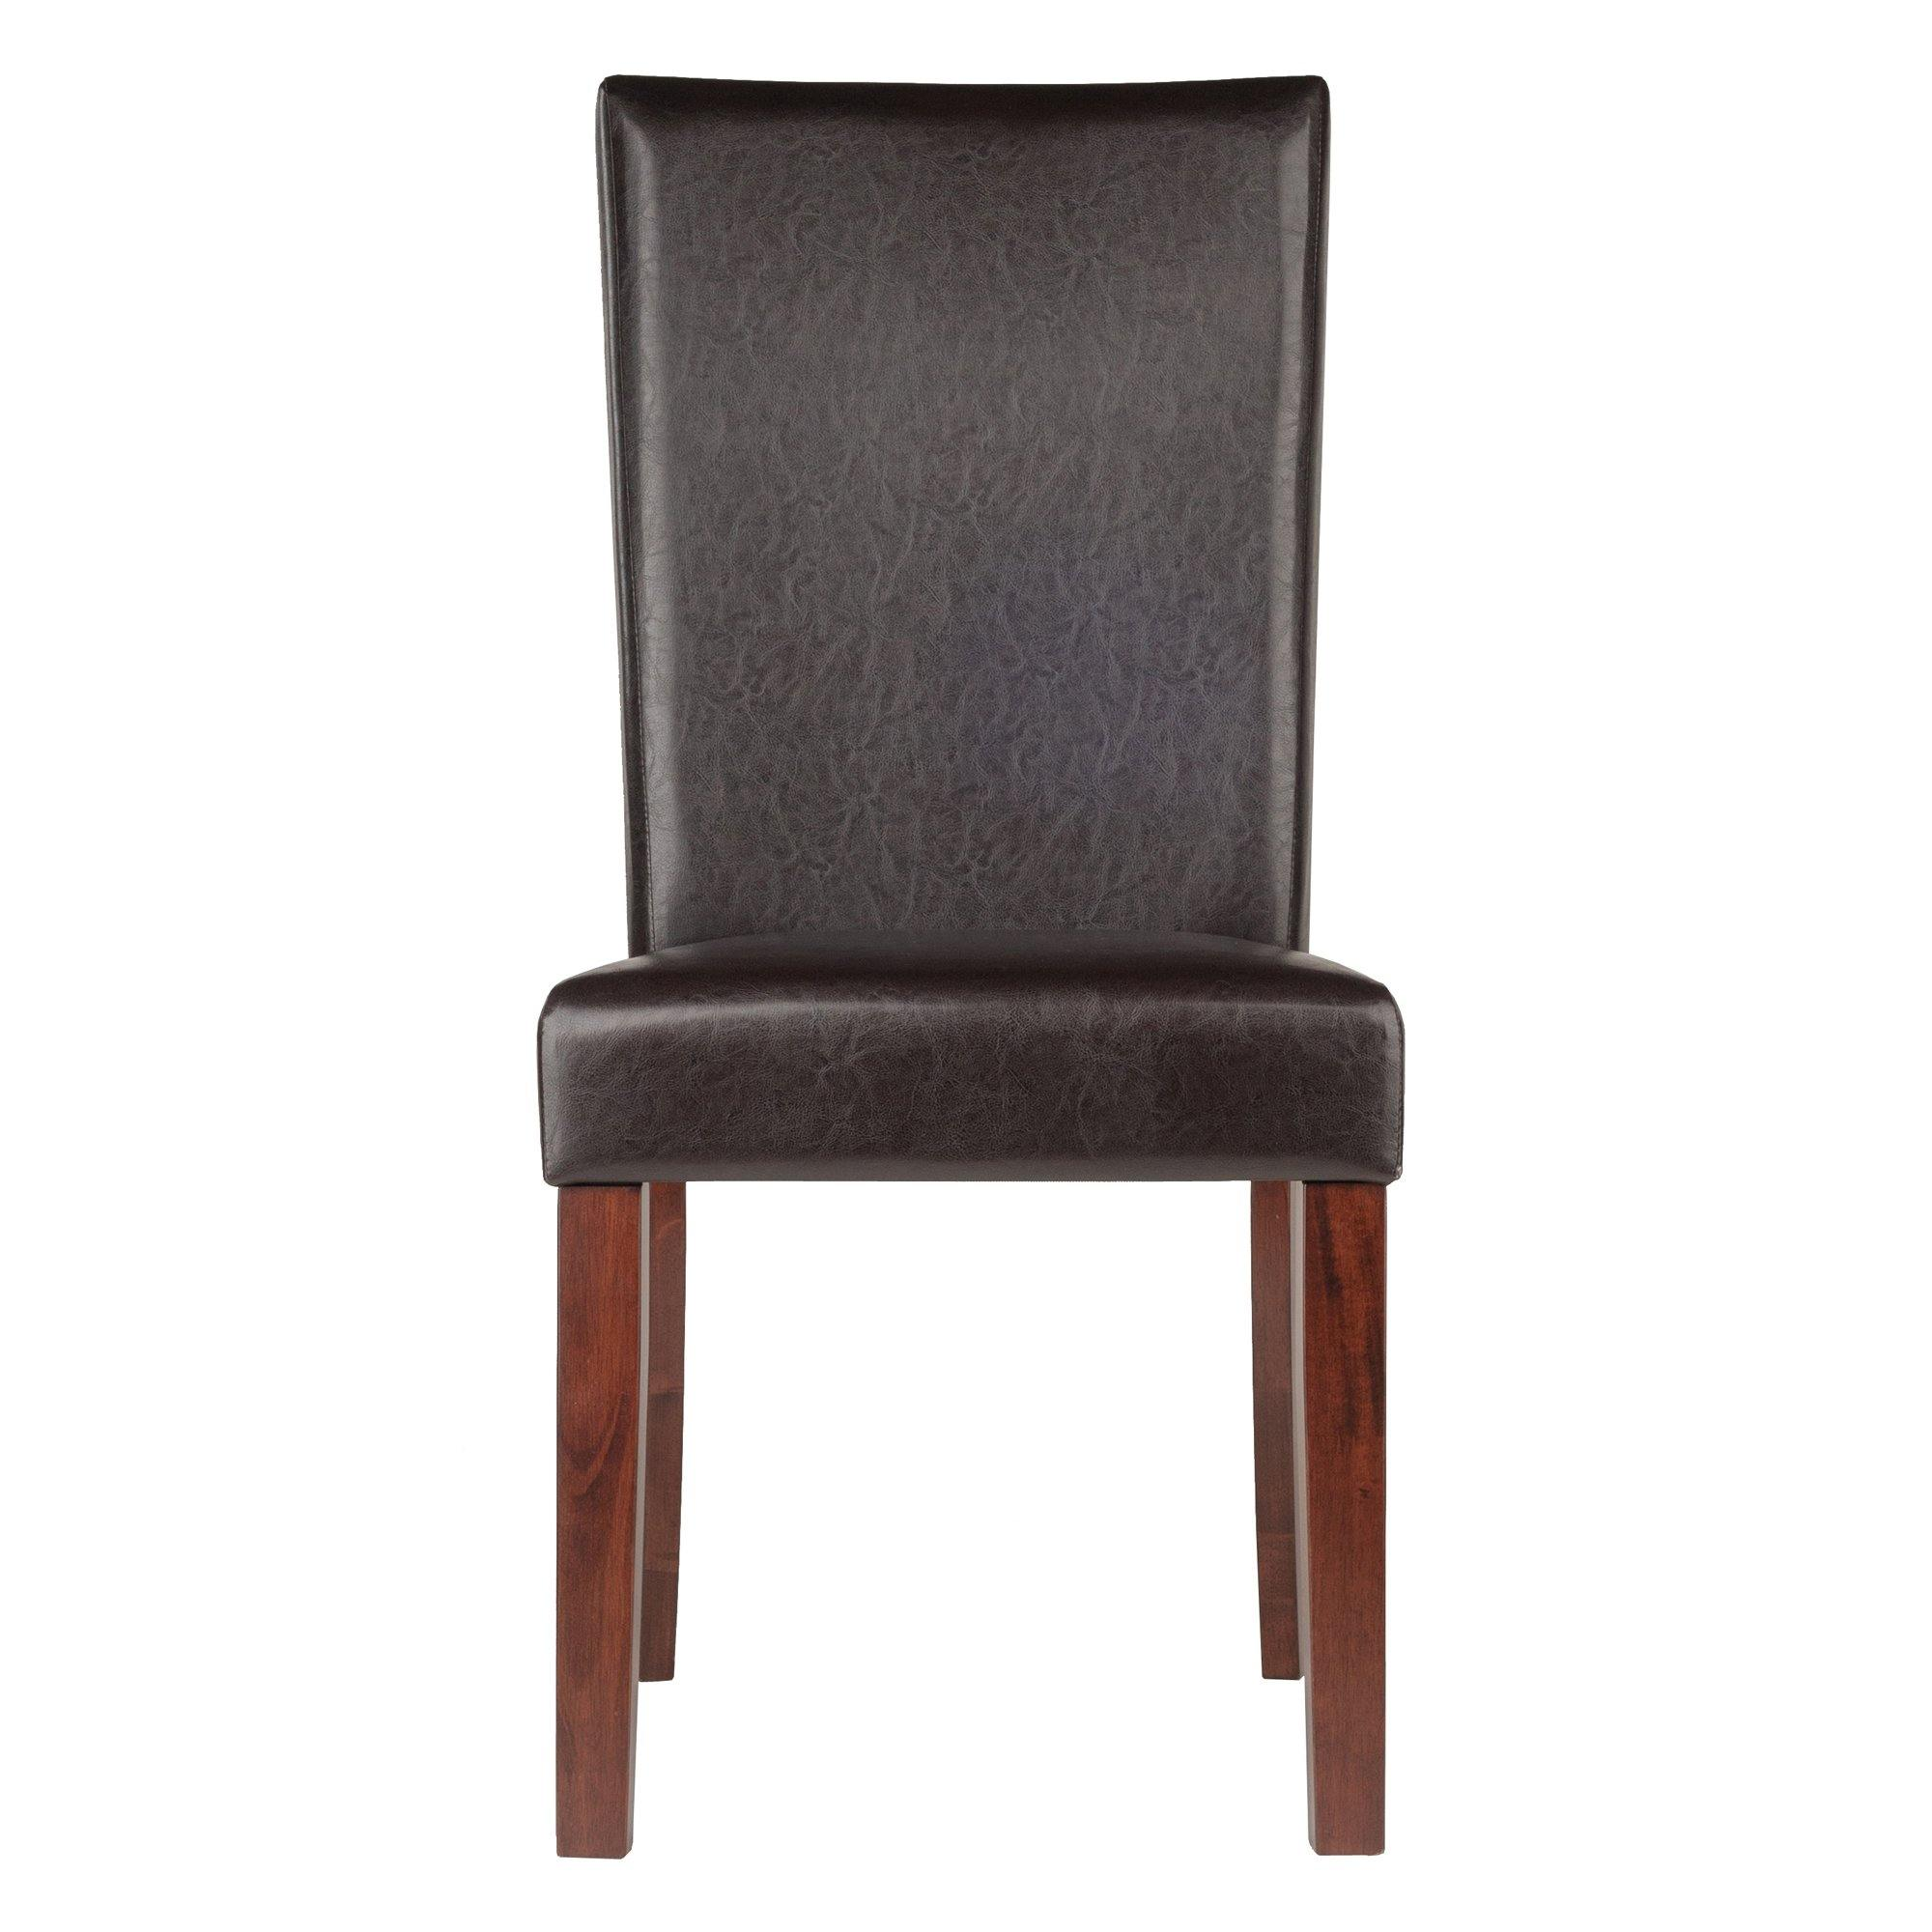 Johnson 2-Pc Set Chair - My USA Furniture